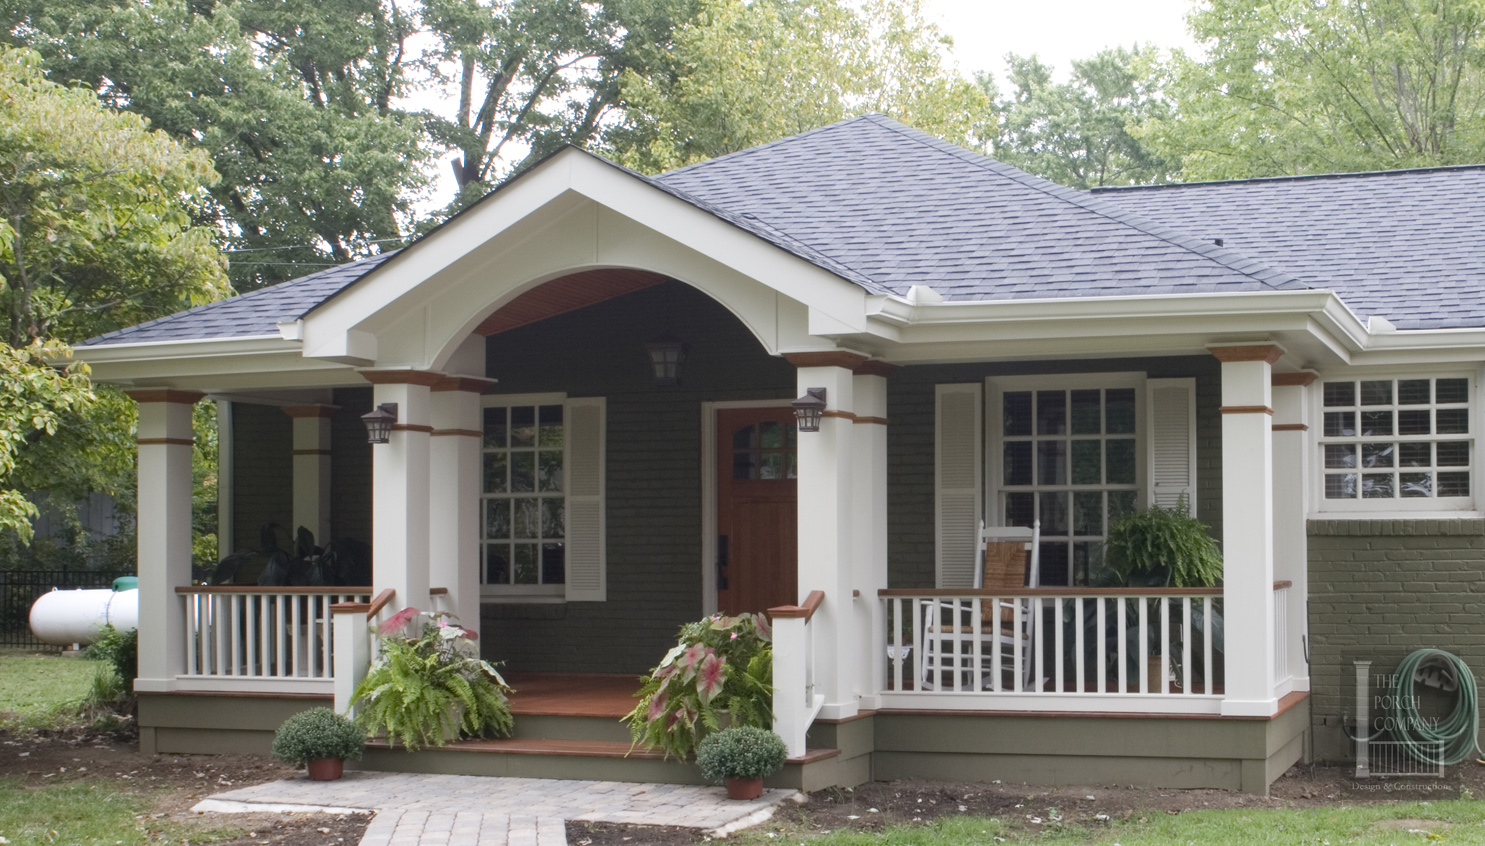 Possible Front Porch Design Plans | Roof styles, Porch roof and Porch